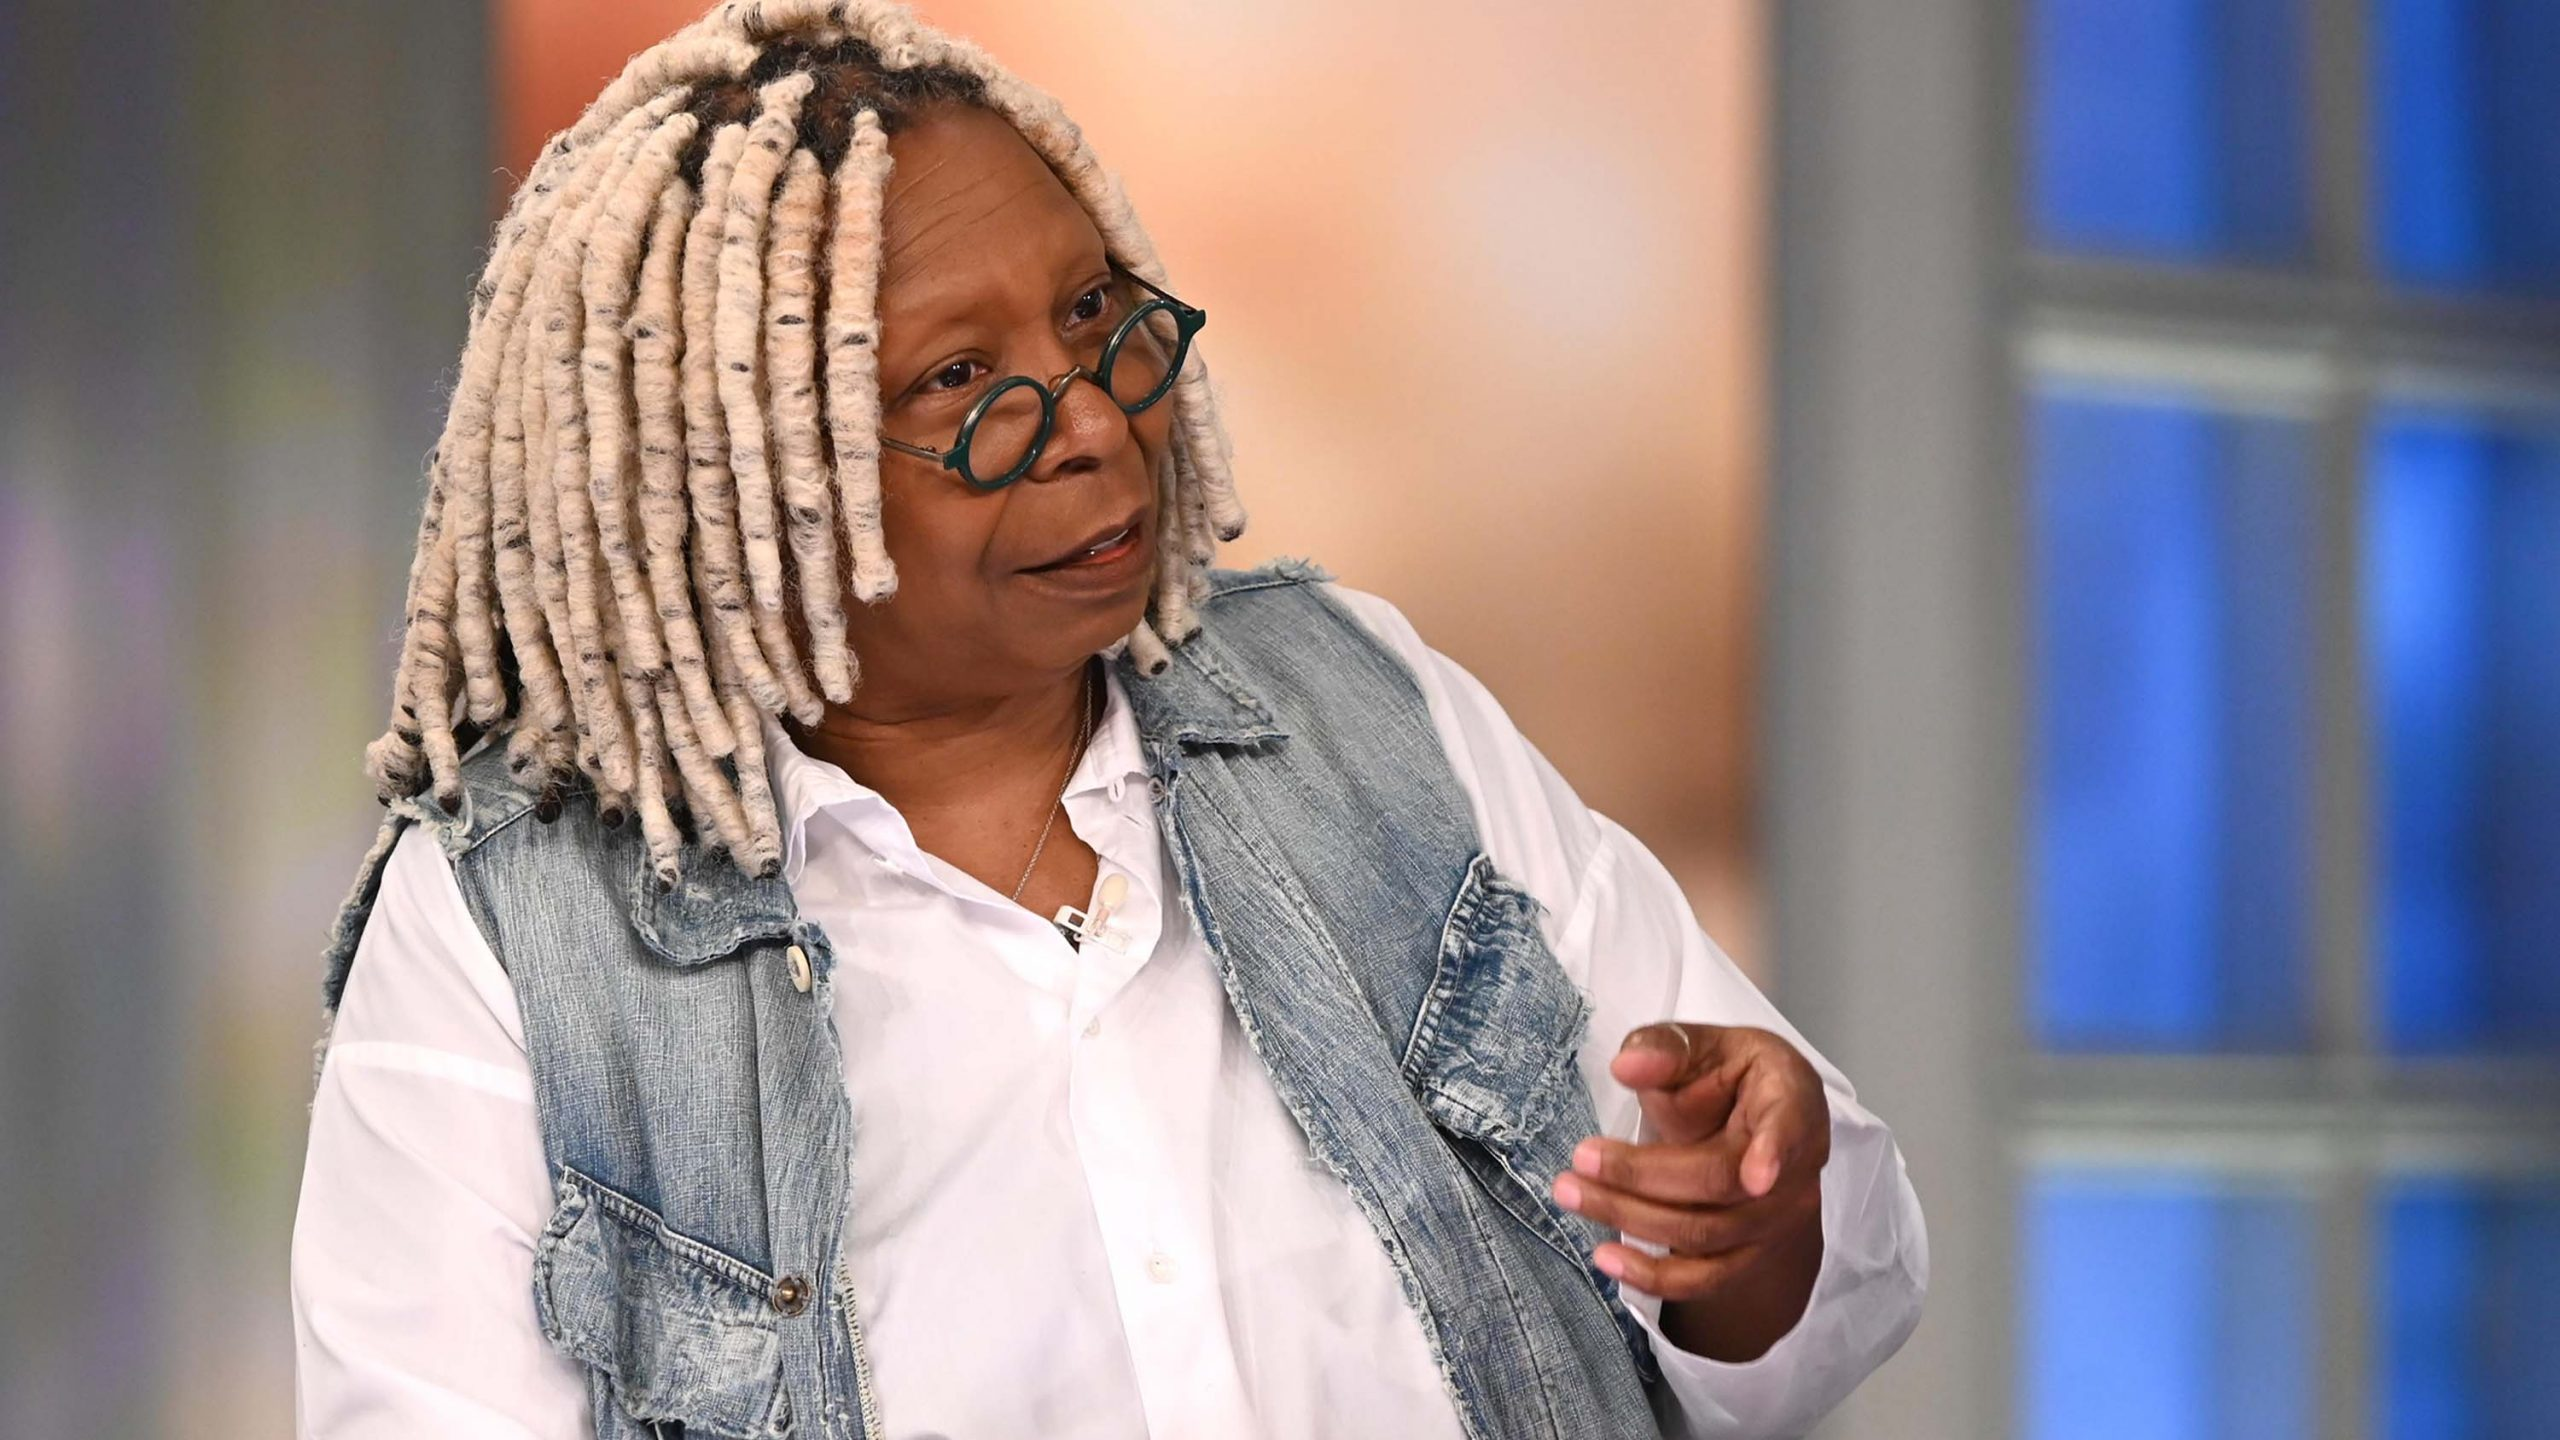 whoopi goldberg top 10 des actrices afro-américaines les plus riches